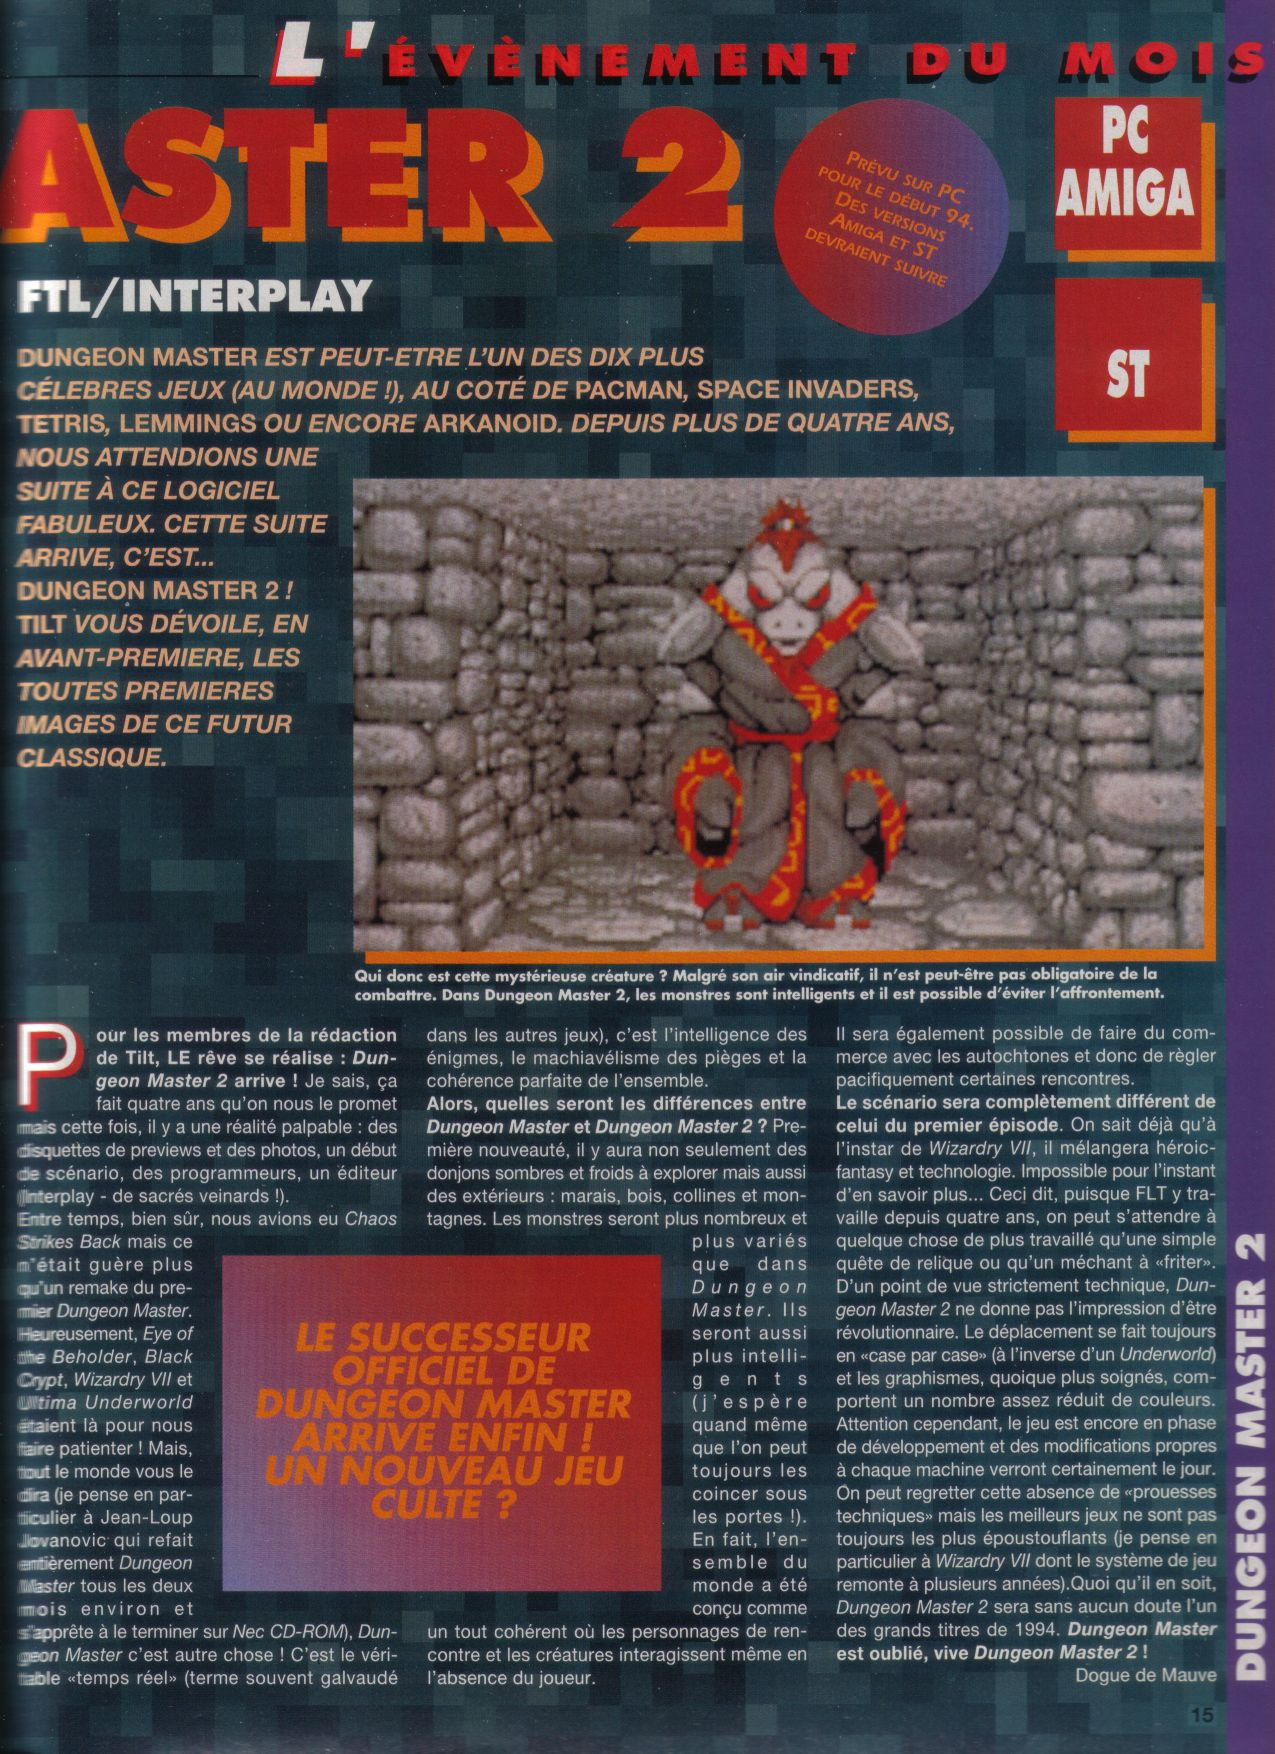 Dungeon Master II for PC / Amiga / Atari ST Preview published in French magazine 'Tilt', Issue #117, September 1993, Page 15